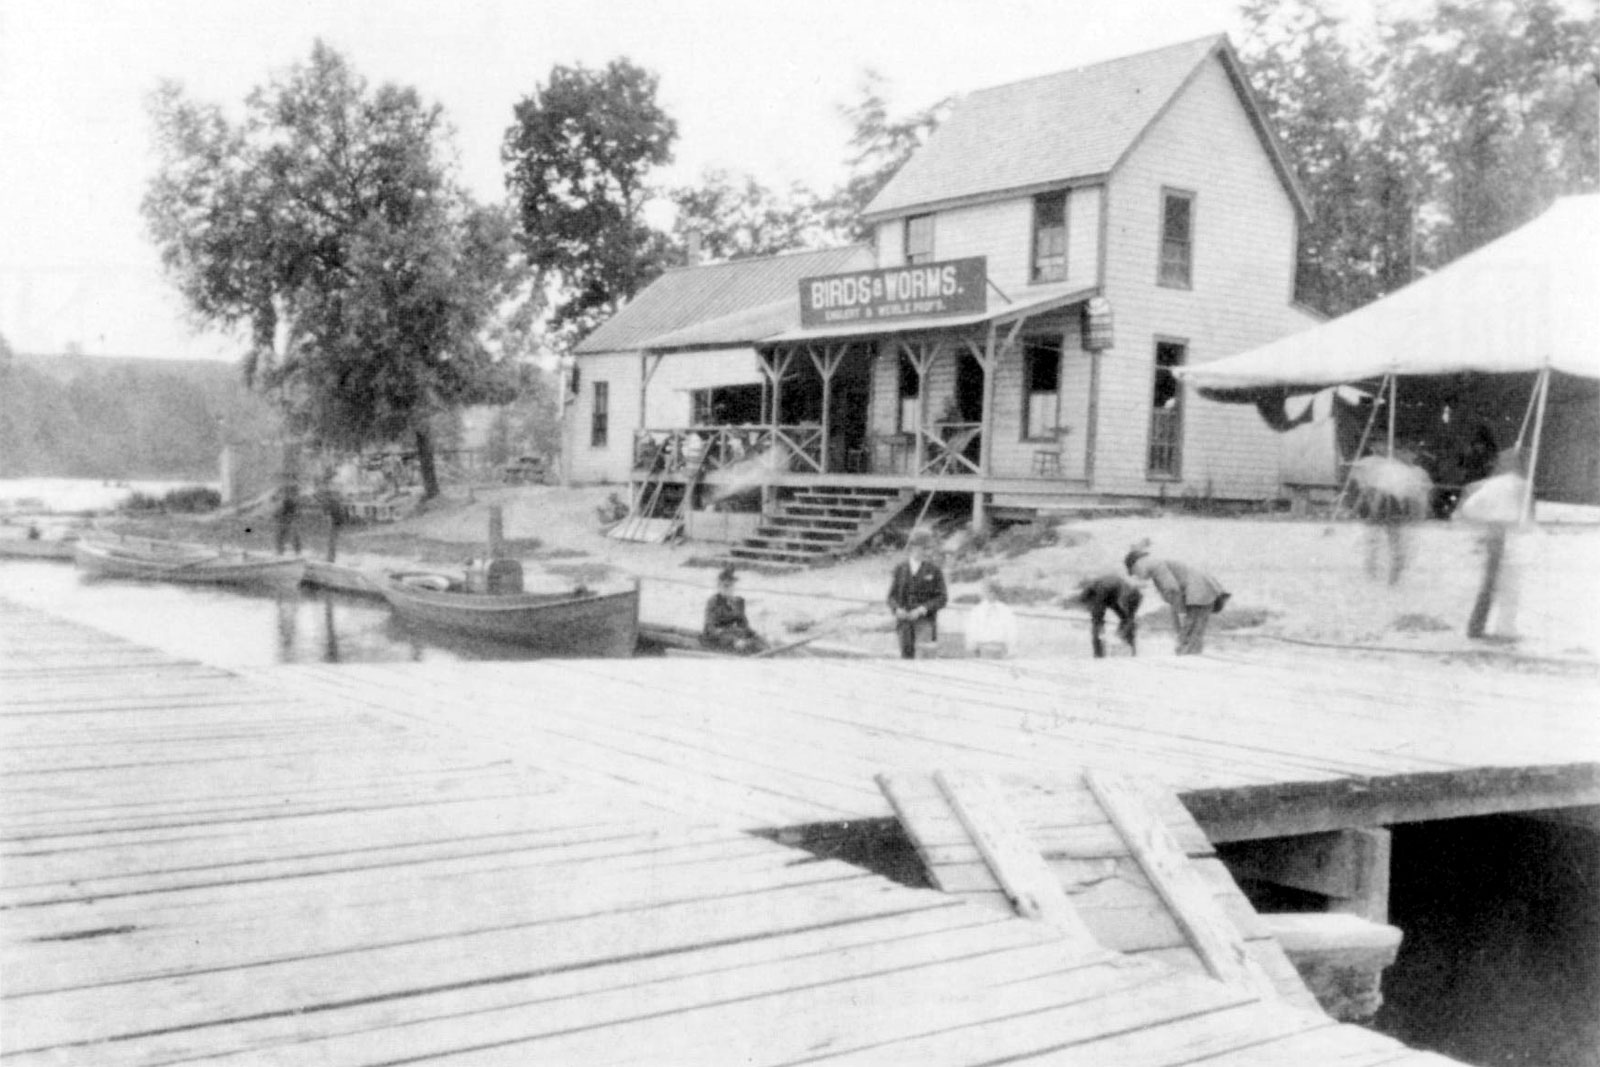 Birds and Worms club on the shore of Irondequoit Bay where Fish and Game Club is today.